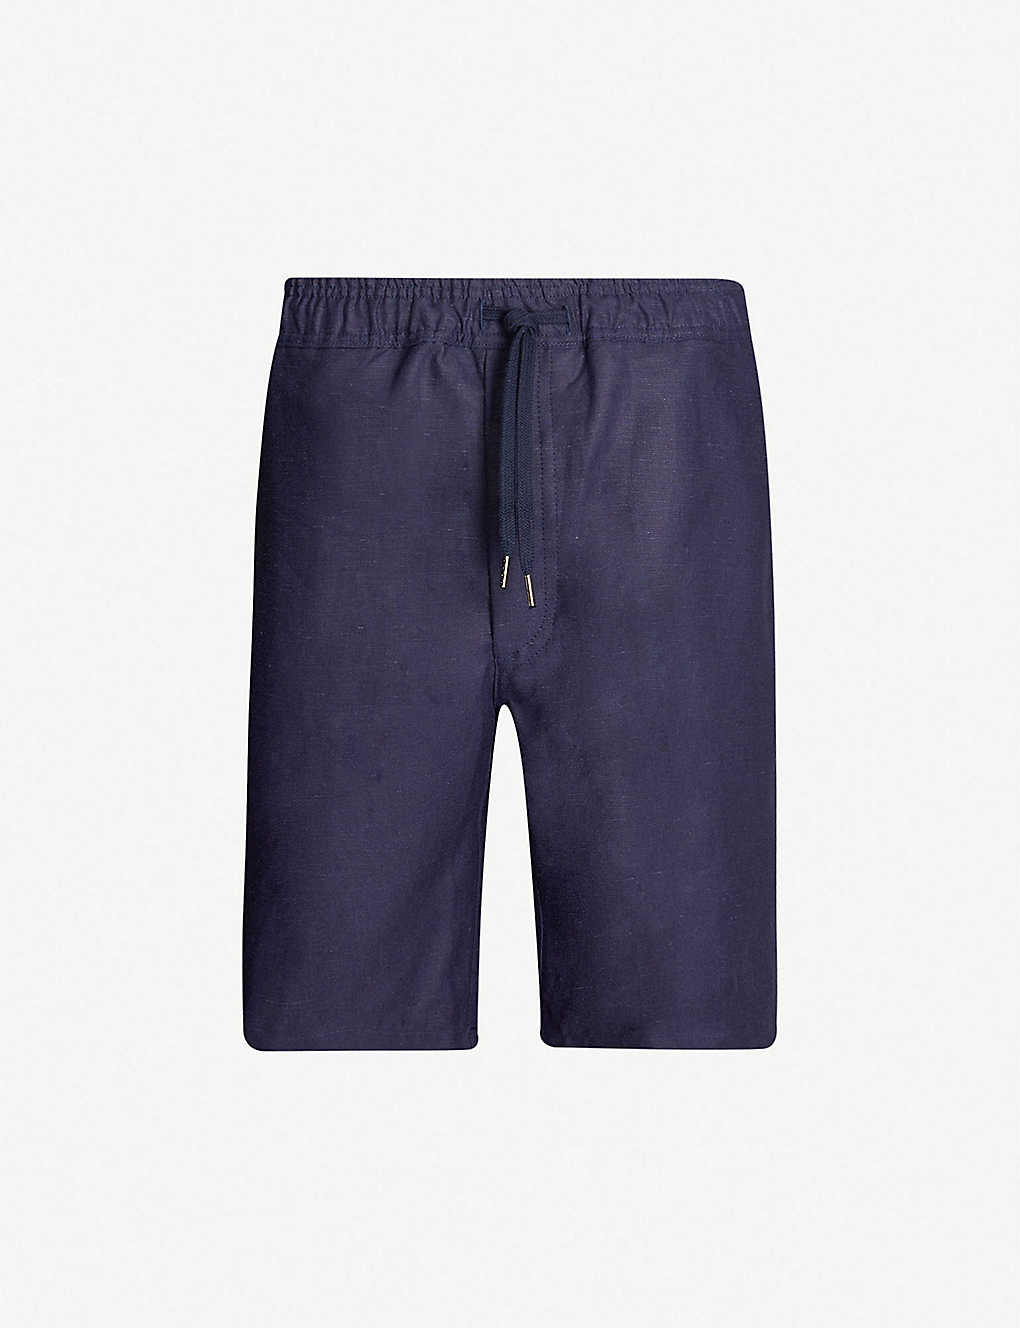 DEREK ROSE: Sydney linen swim shorts